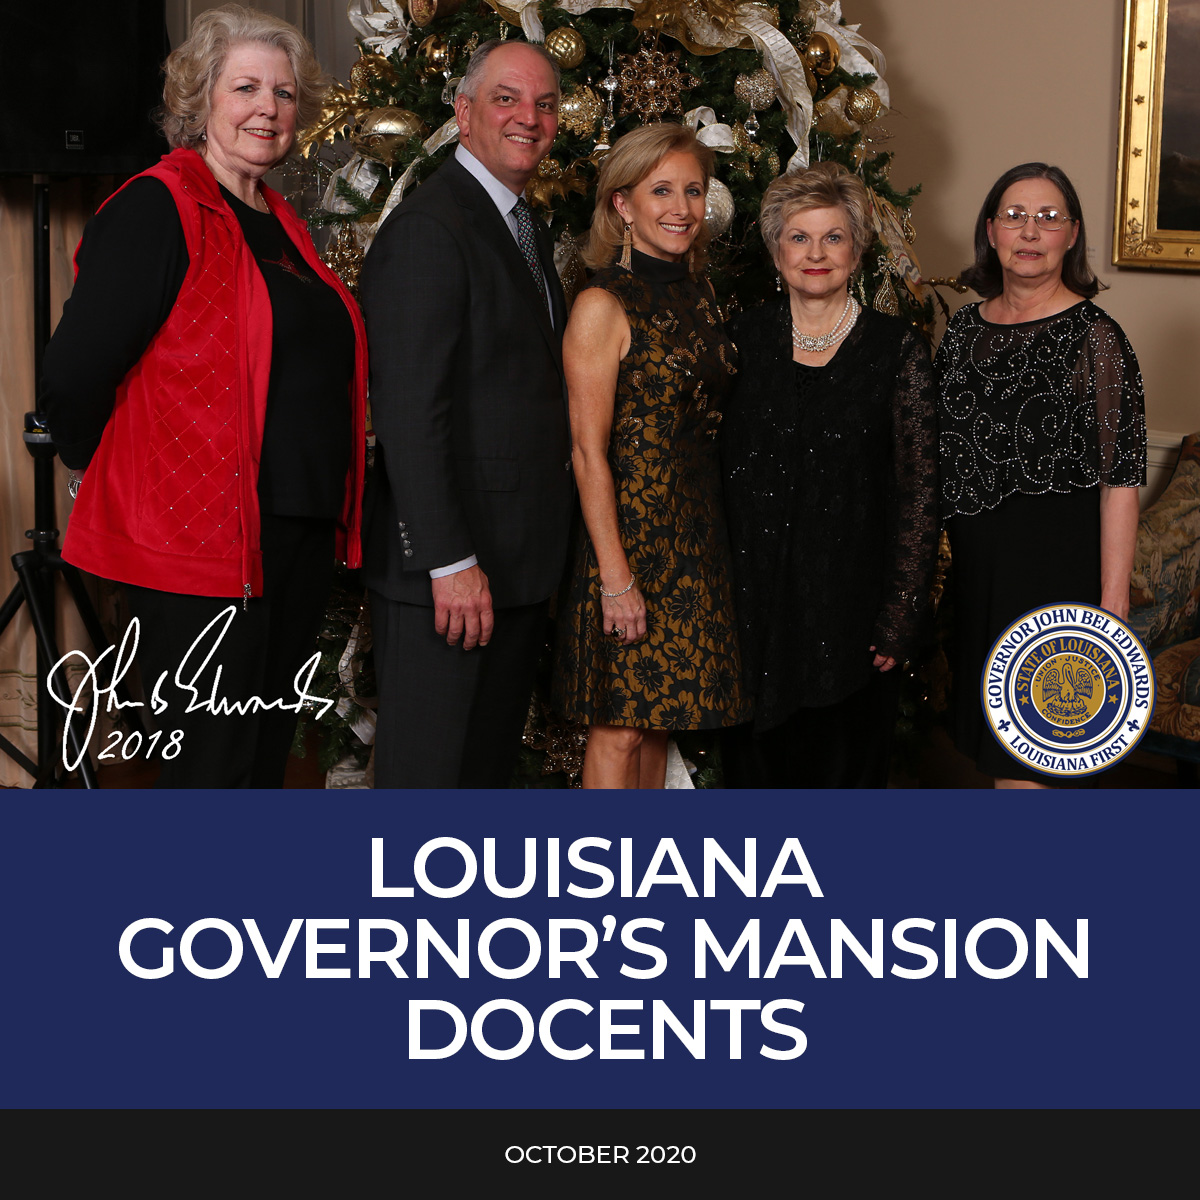 Louisiana Governor's Mansion Docents